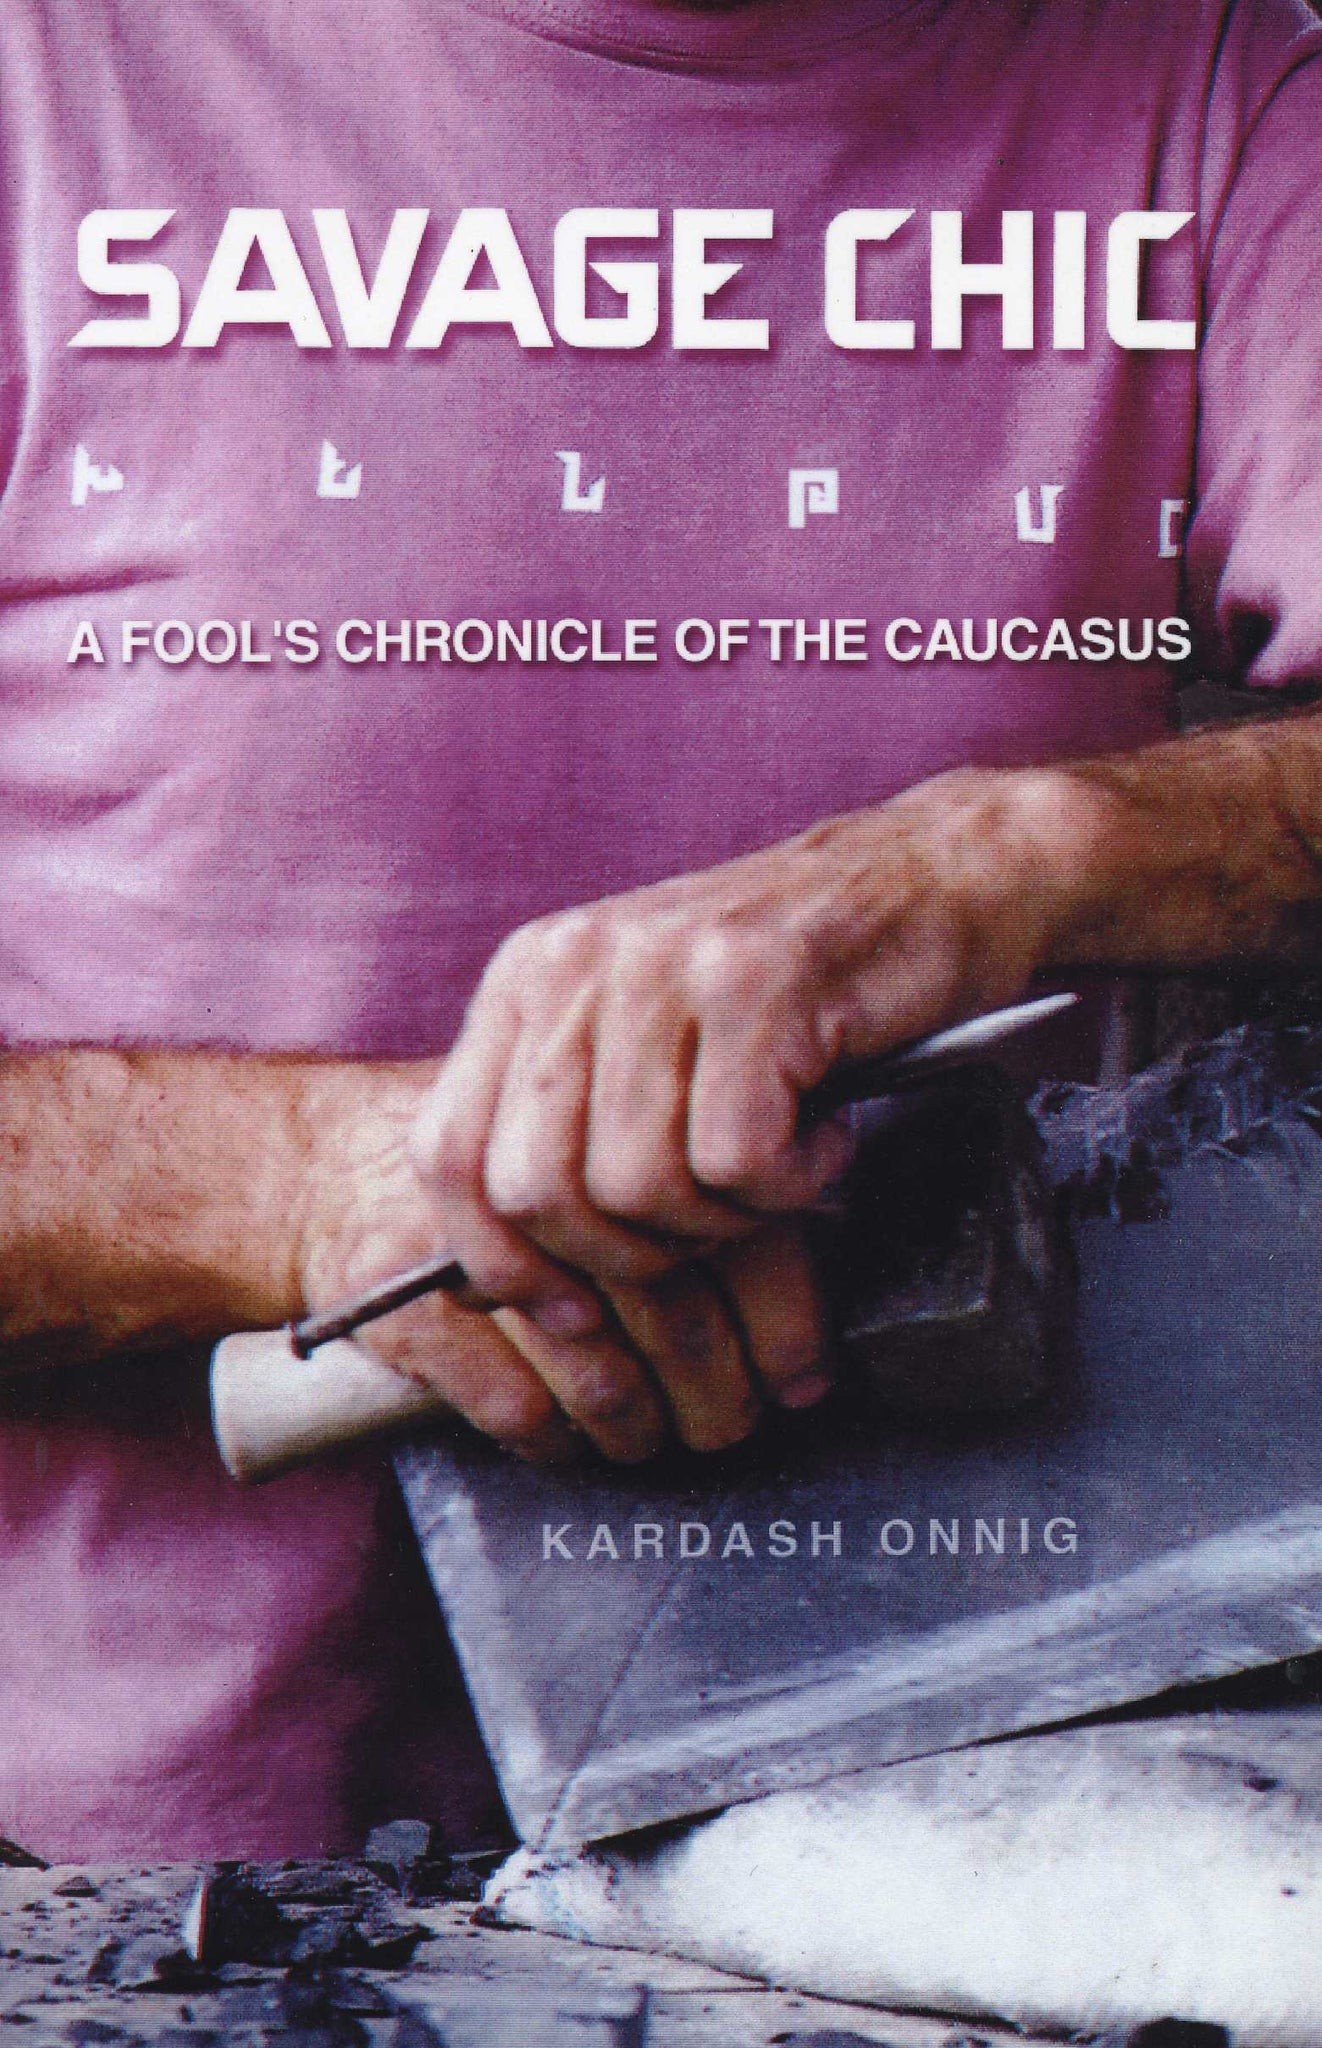 SAVAGE CHIC: A Fool's Chronicle of the Caucasus